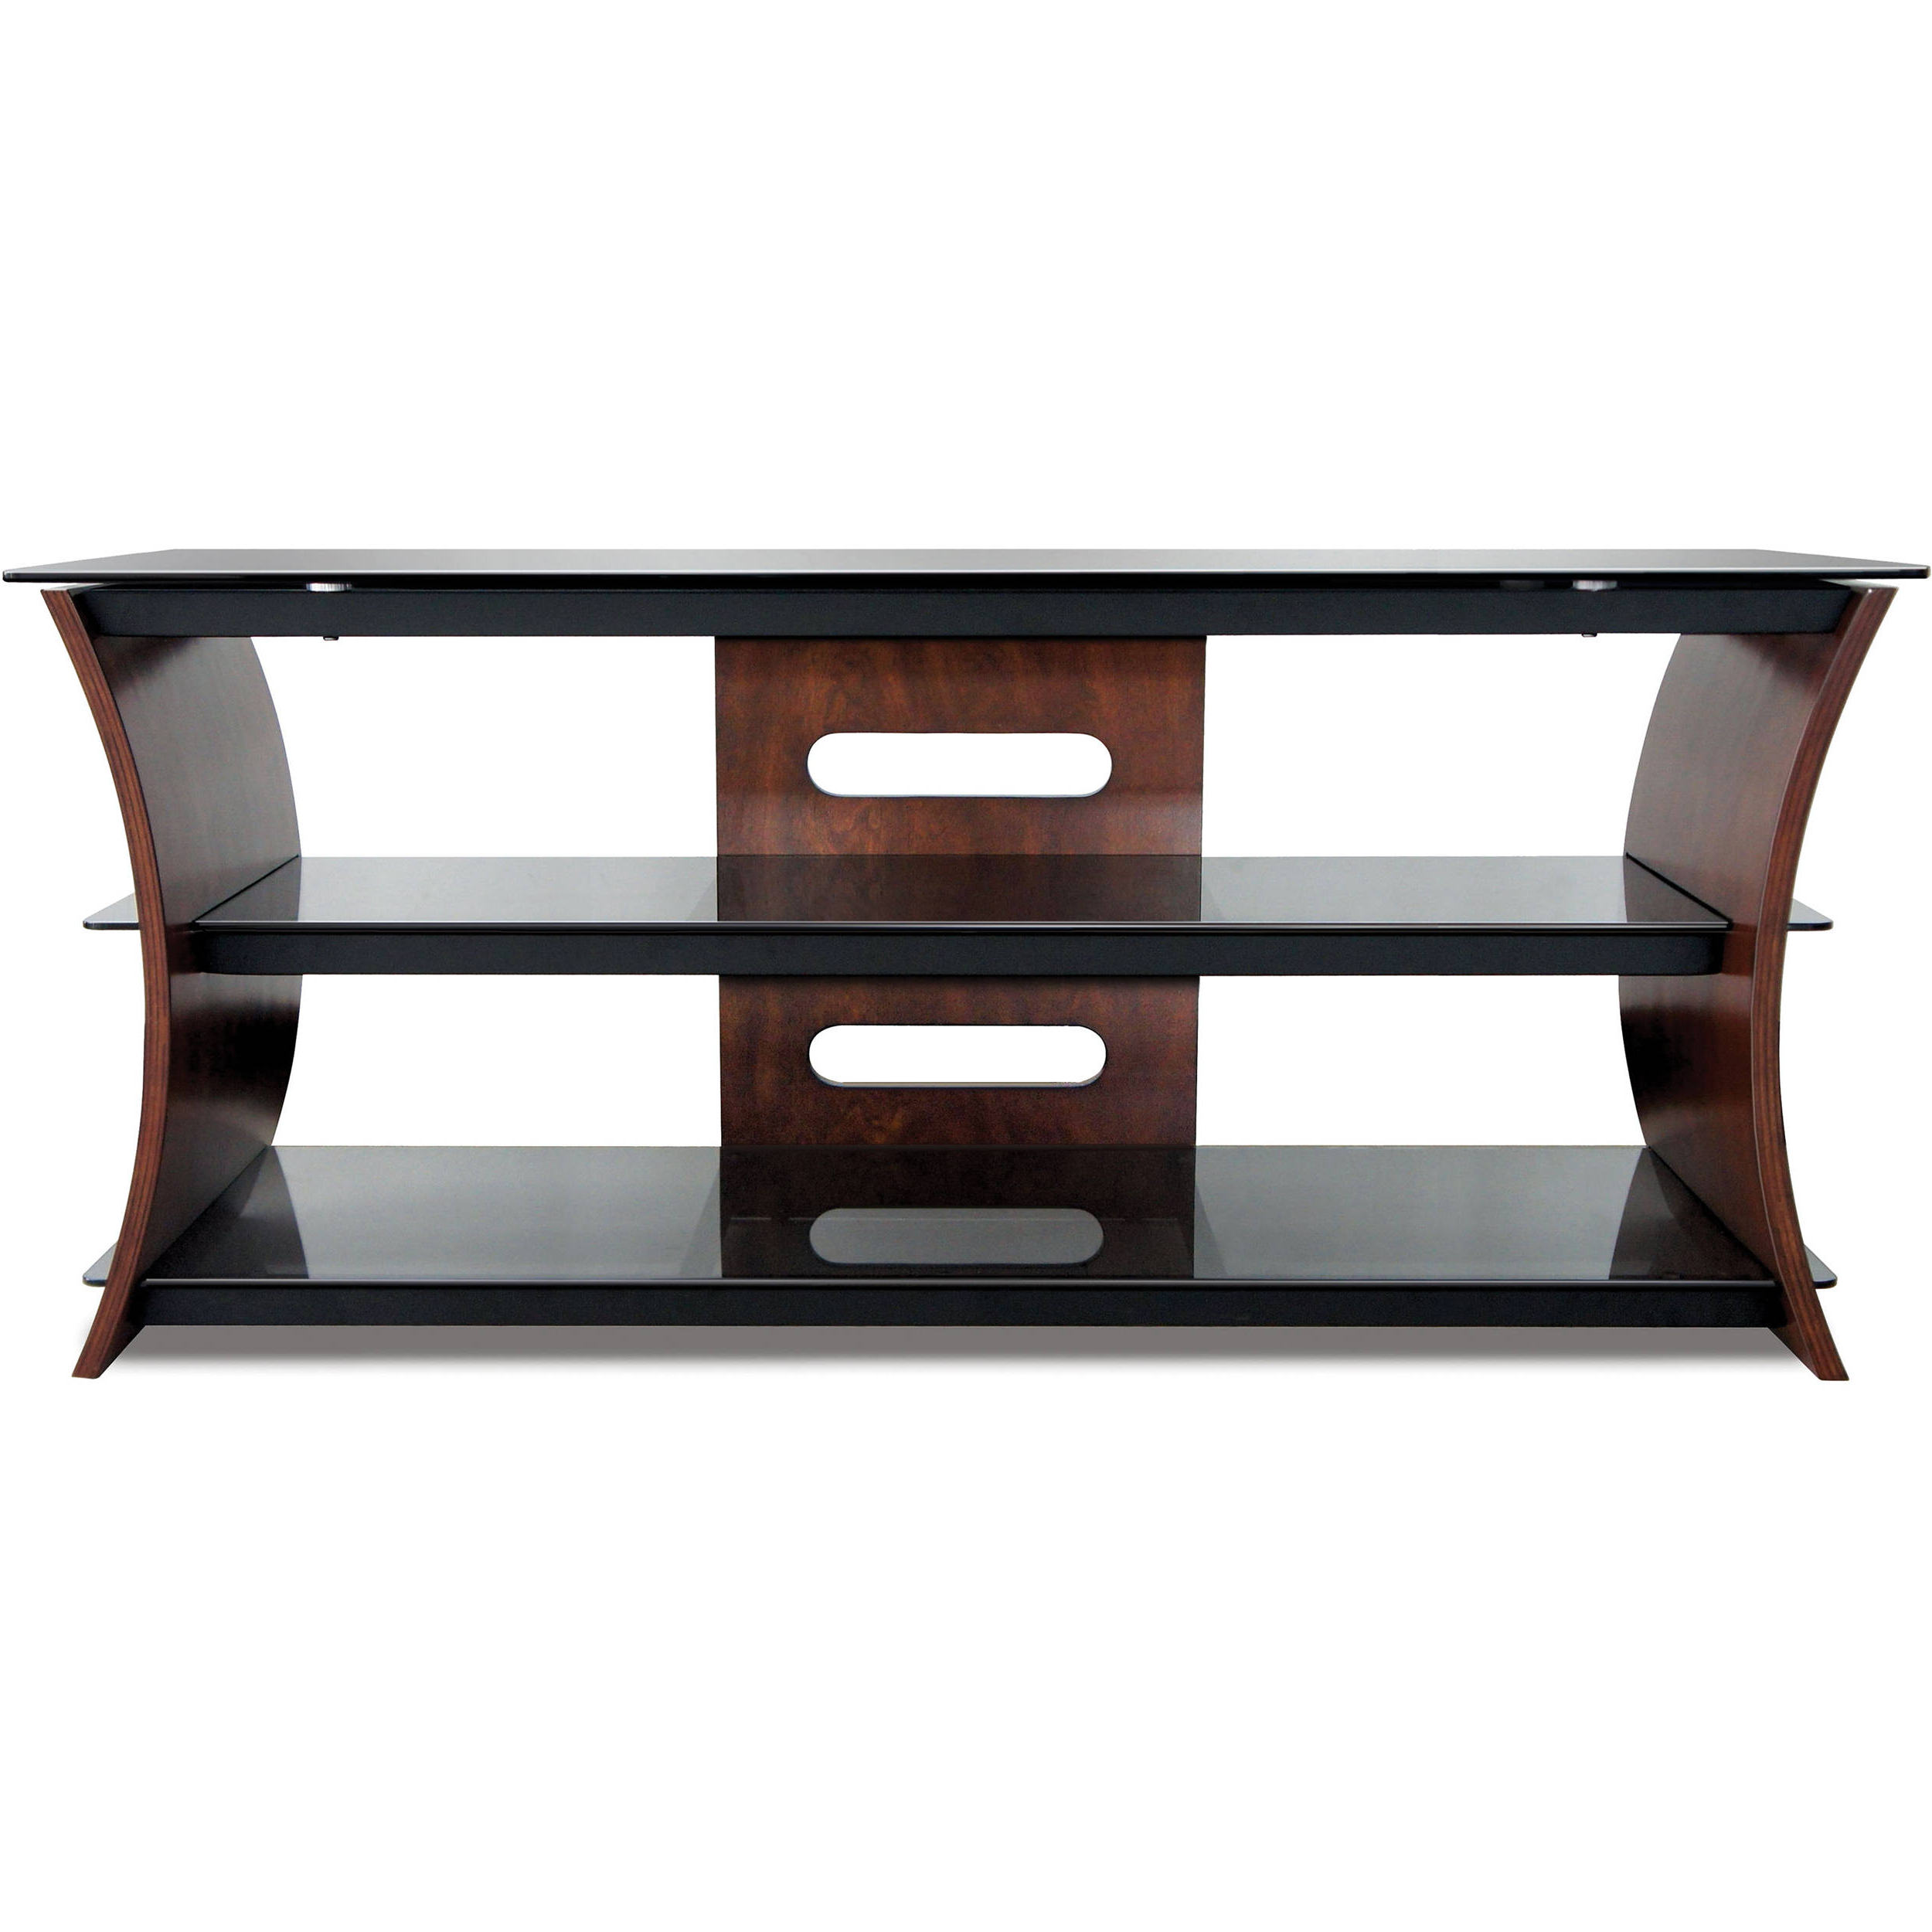 Bell'o Cw356 Curved Wood Tv Stand Cw356 B&h Photo Video Throughout Well Known Curve Tv Stands (Gallery 8 of 20)